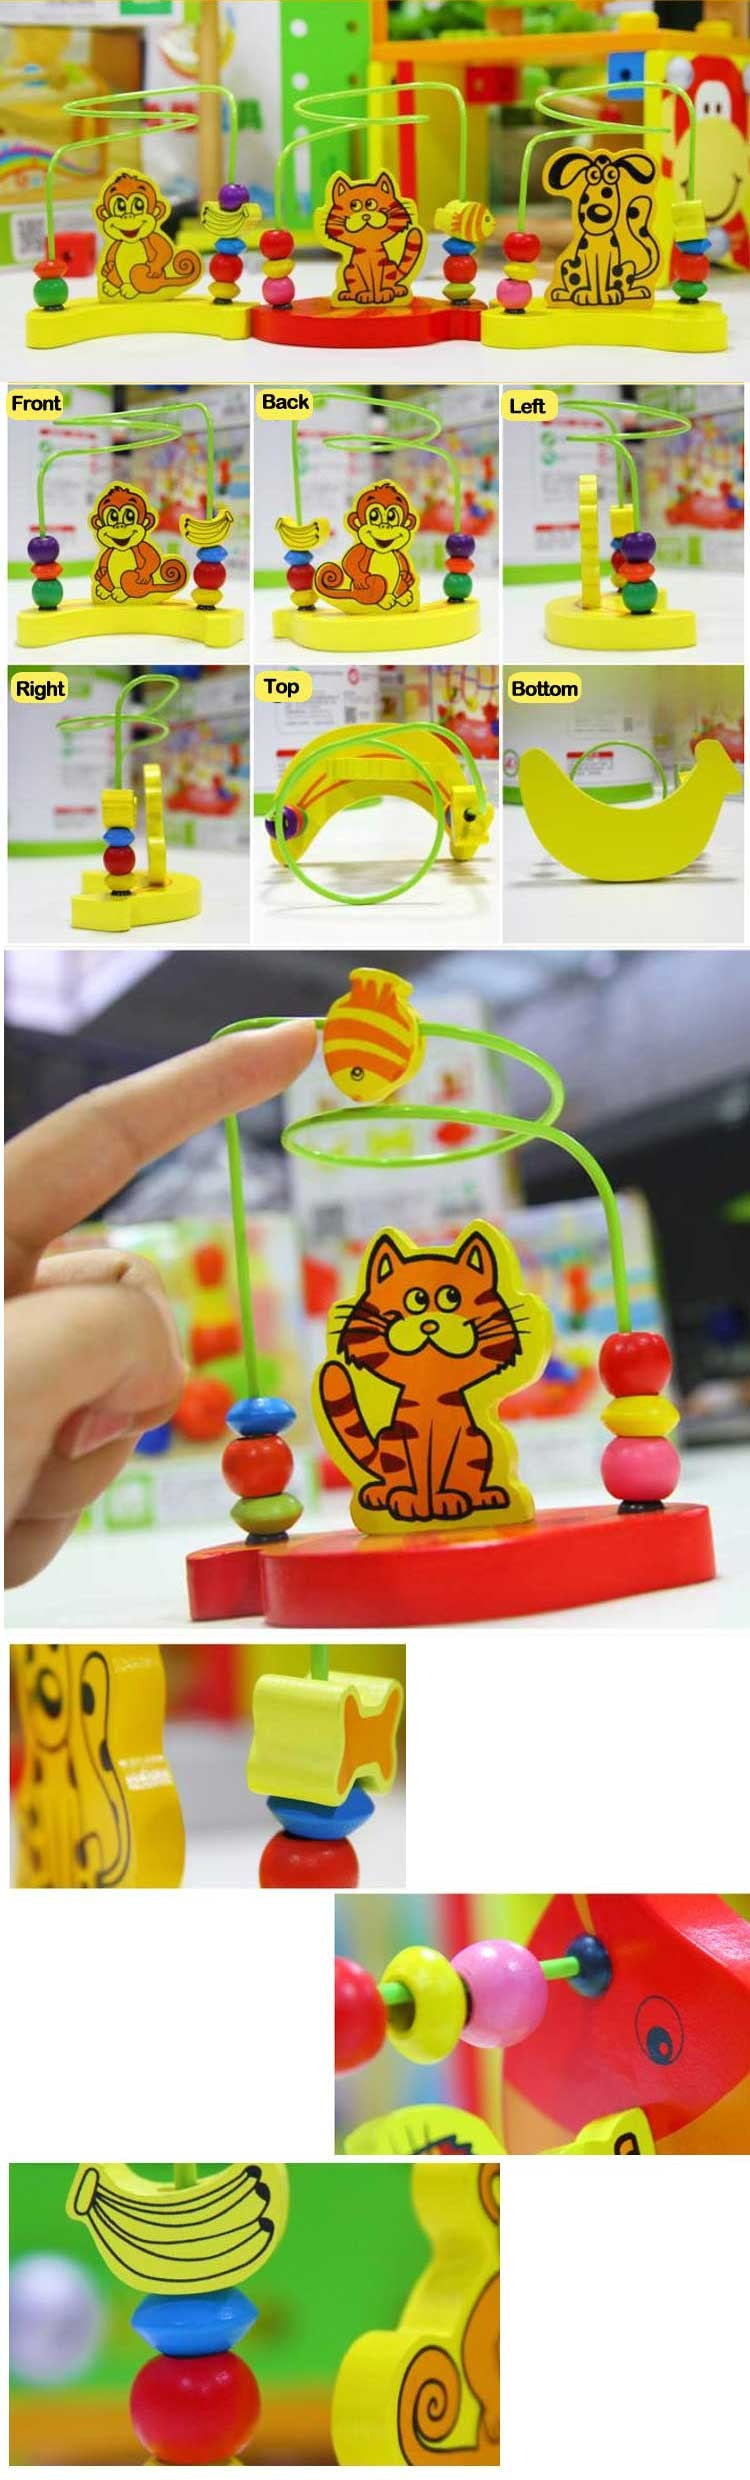 Fashion Kids Wood Diy Animal Toy Intelligent Learning Game Educational Toys For Kids